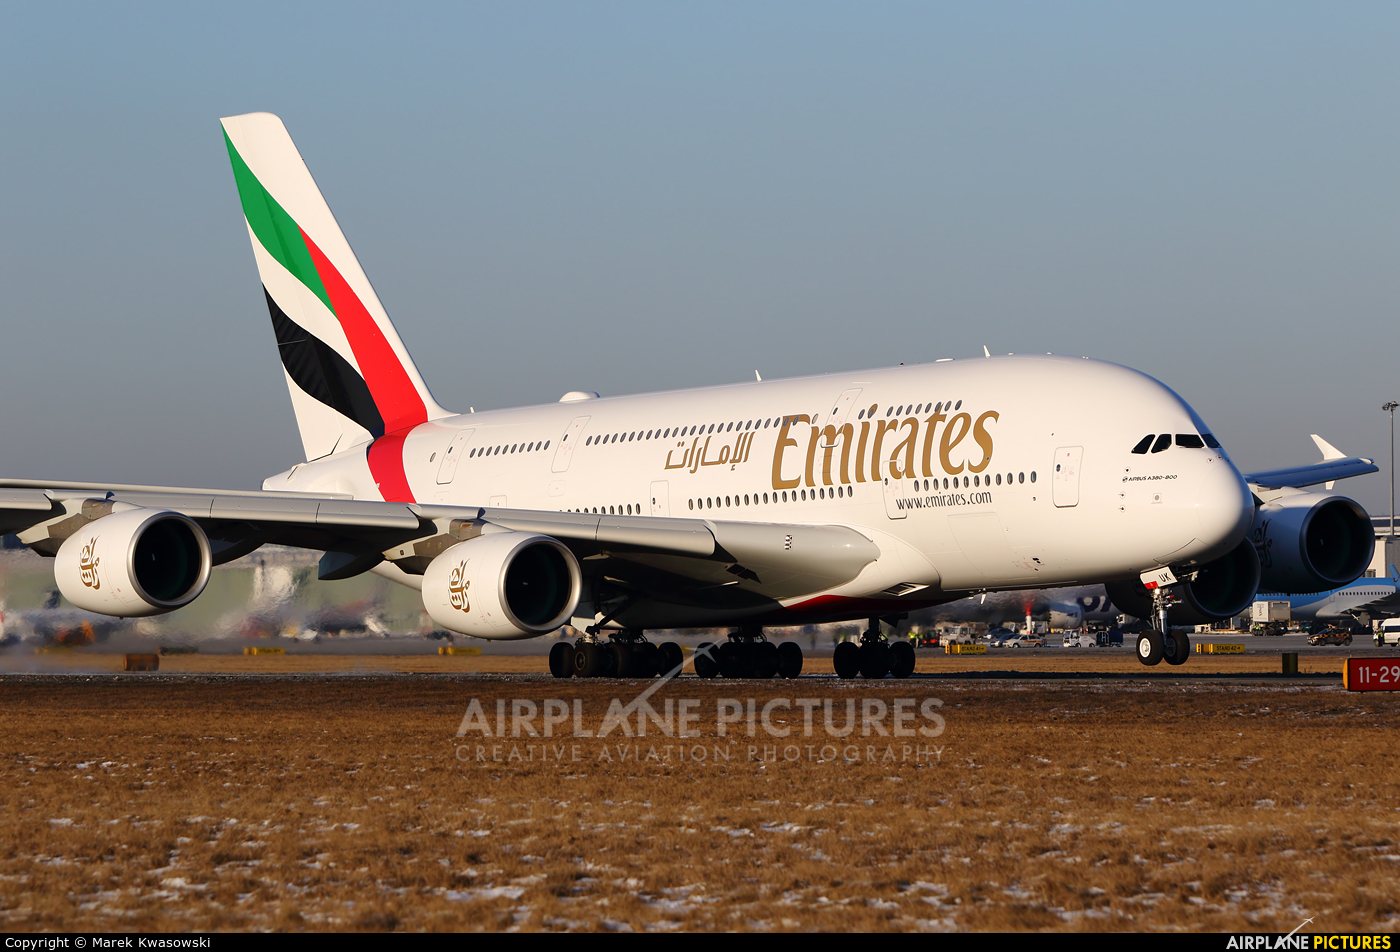 Emirates Airlines A6-EUK aircraft at Warsaw - Frederic Chopin